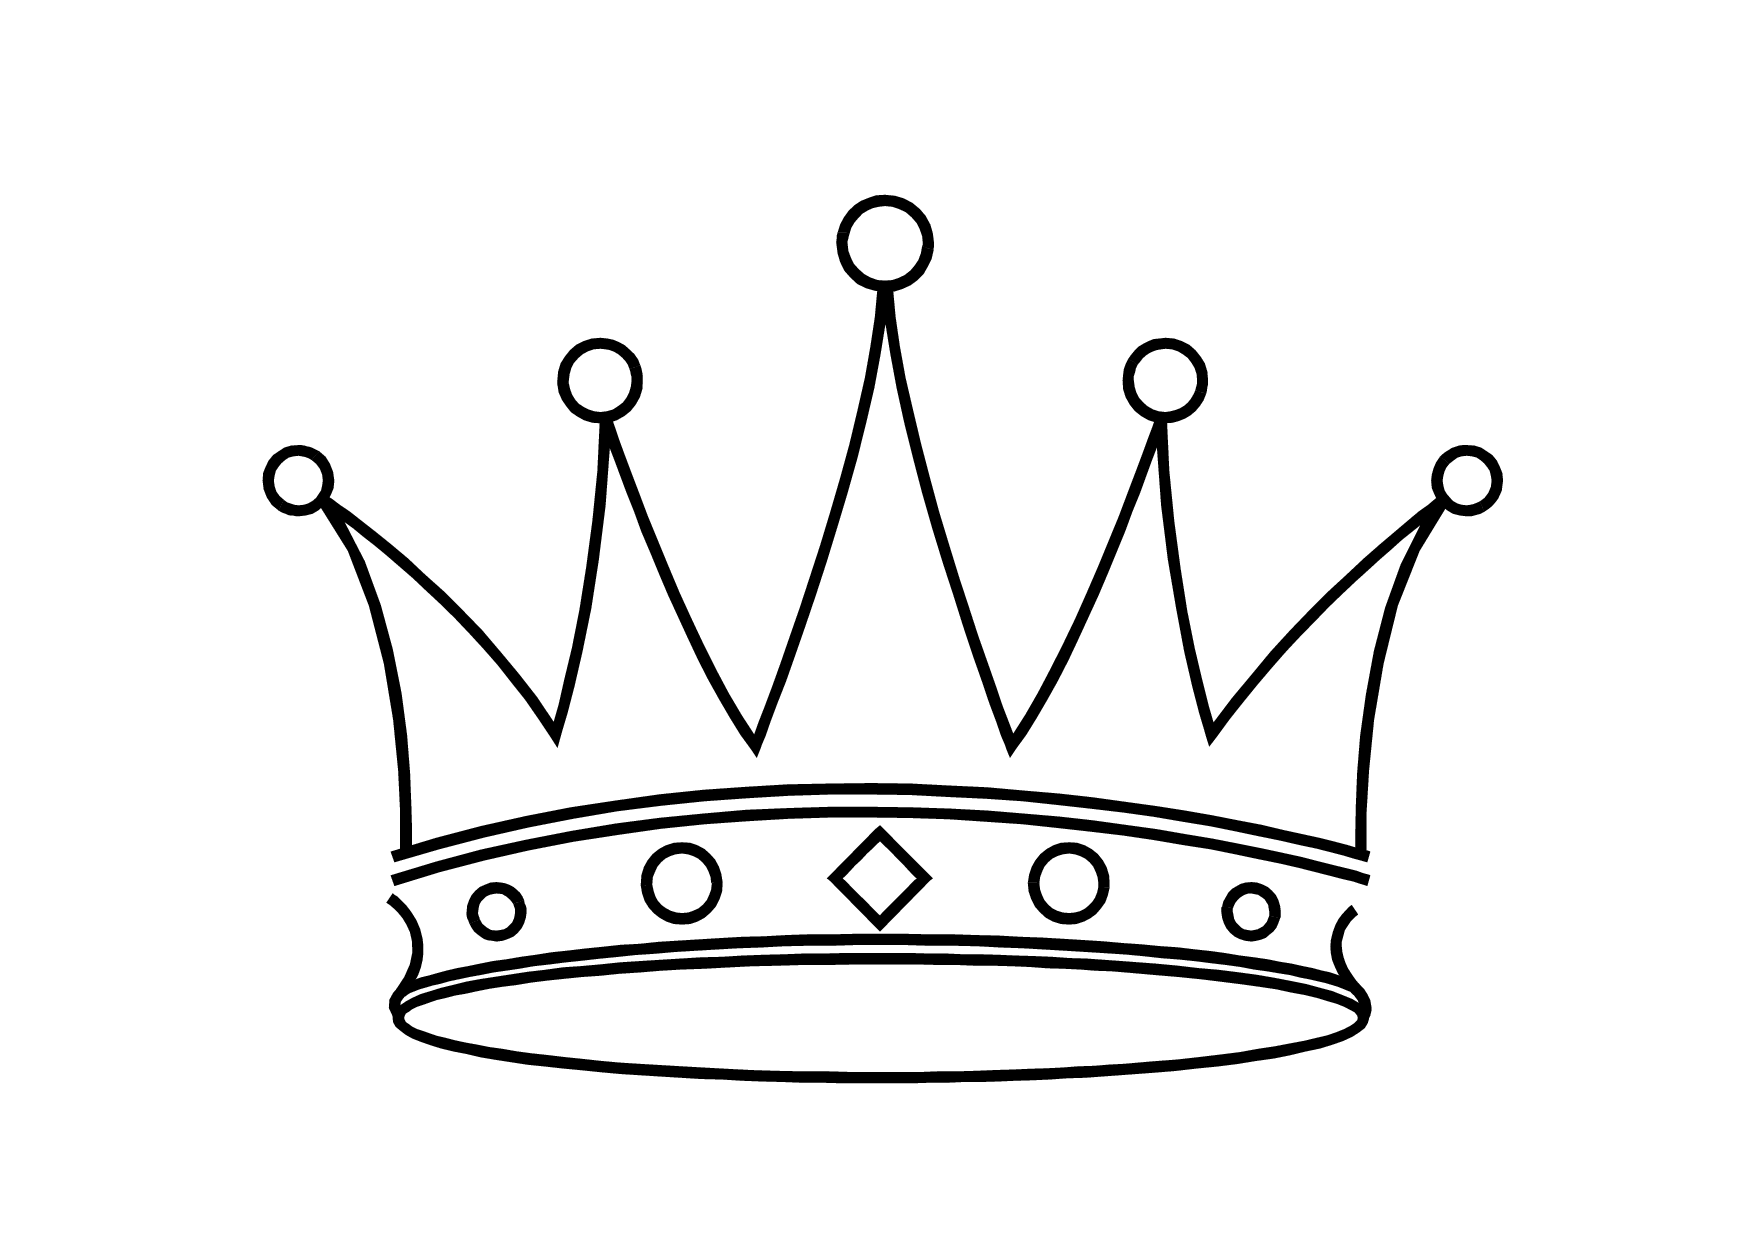 King Crown Outline Clipart #1-King Crown Outline Clipart #1-14